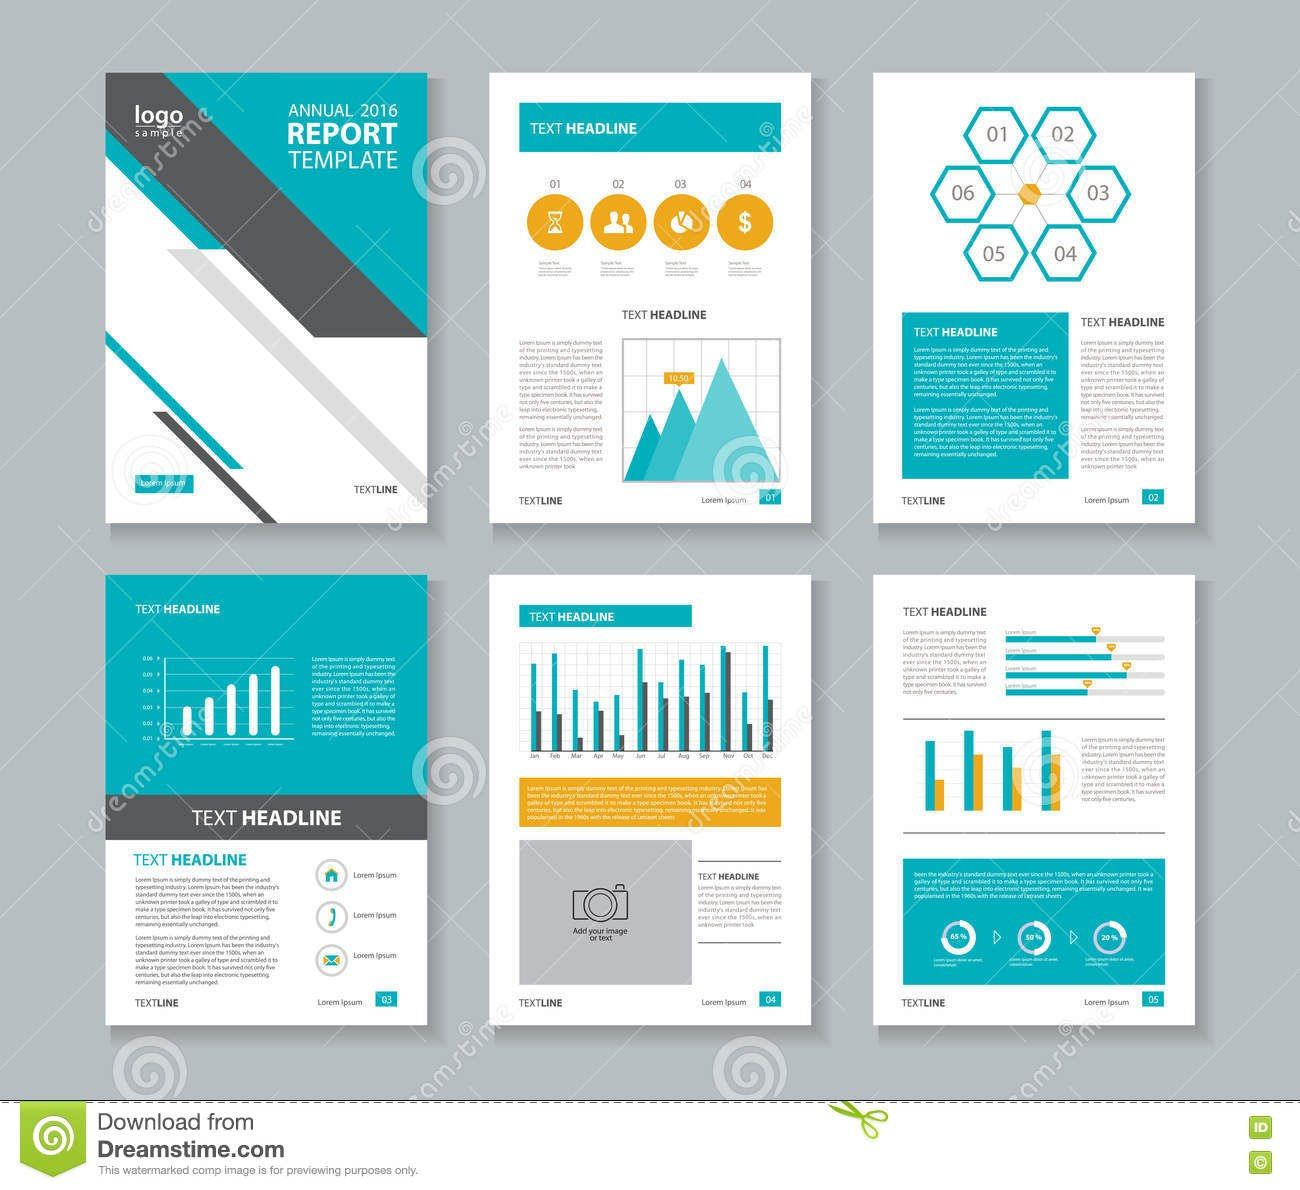 Annual Report Template Word Company Profile Brochure Flyer With Annual Report Template Word 10 Pro Word Template Report Template Business Card Template Word